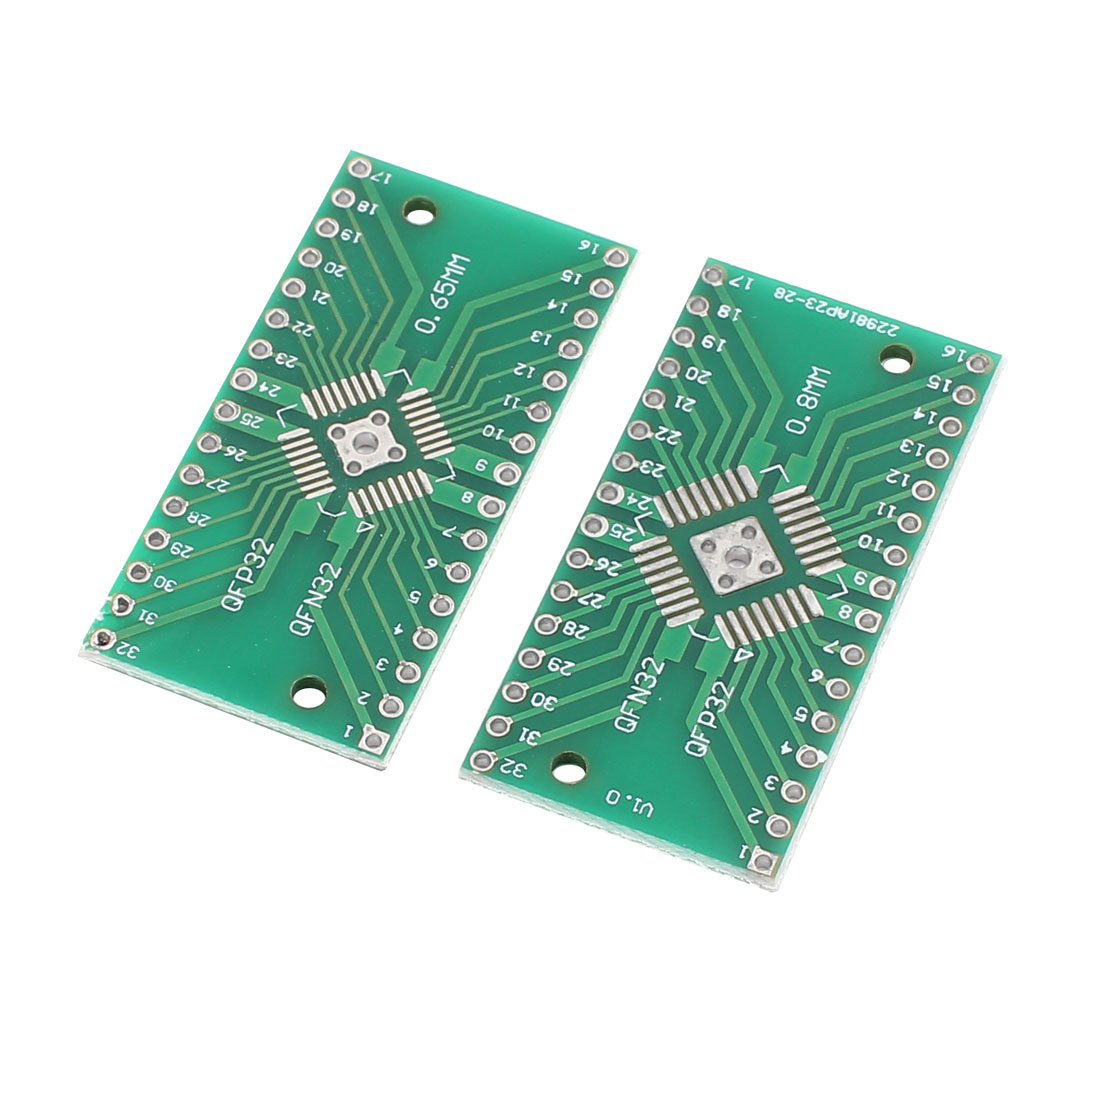 2Pcs Prototyping Double Side PCB Board Stripboard Green 20x24mm QFN32